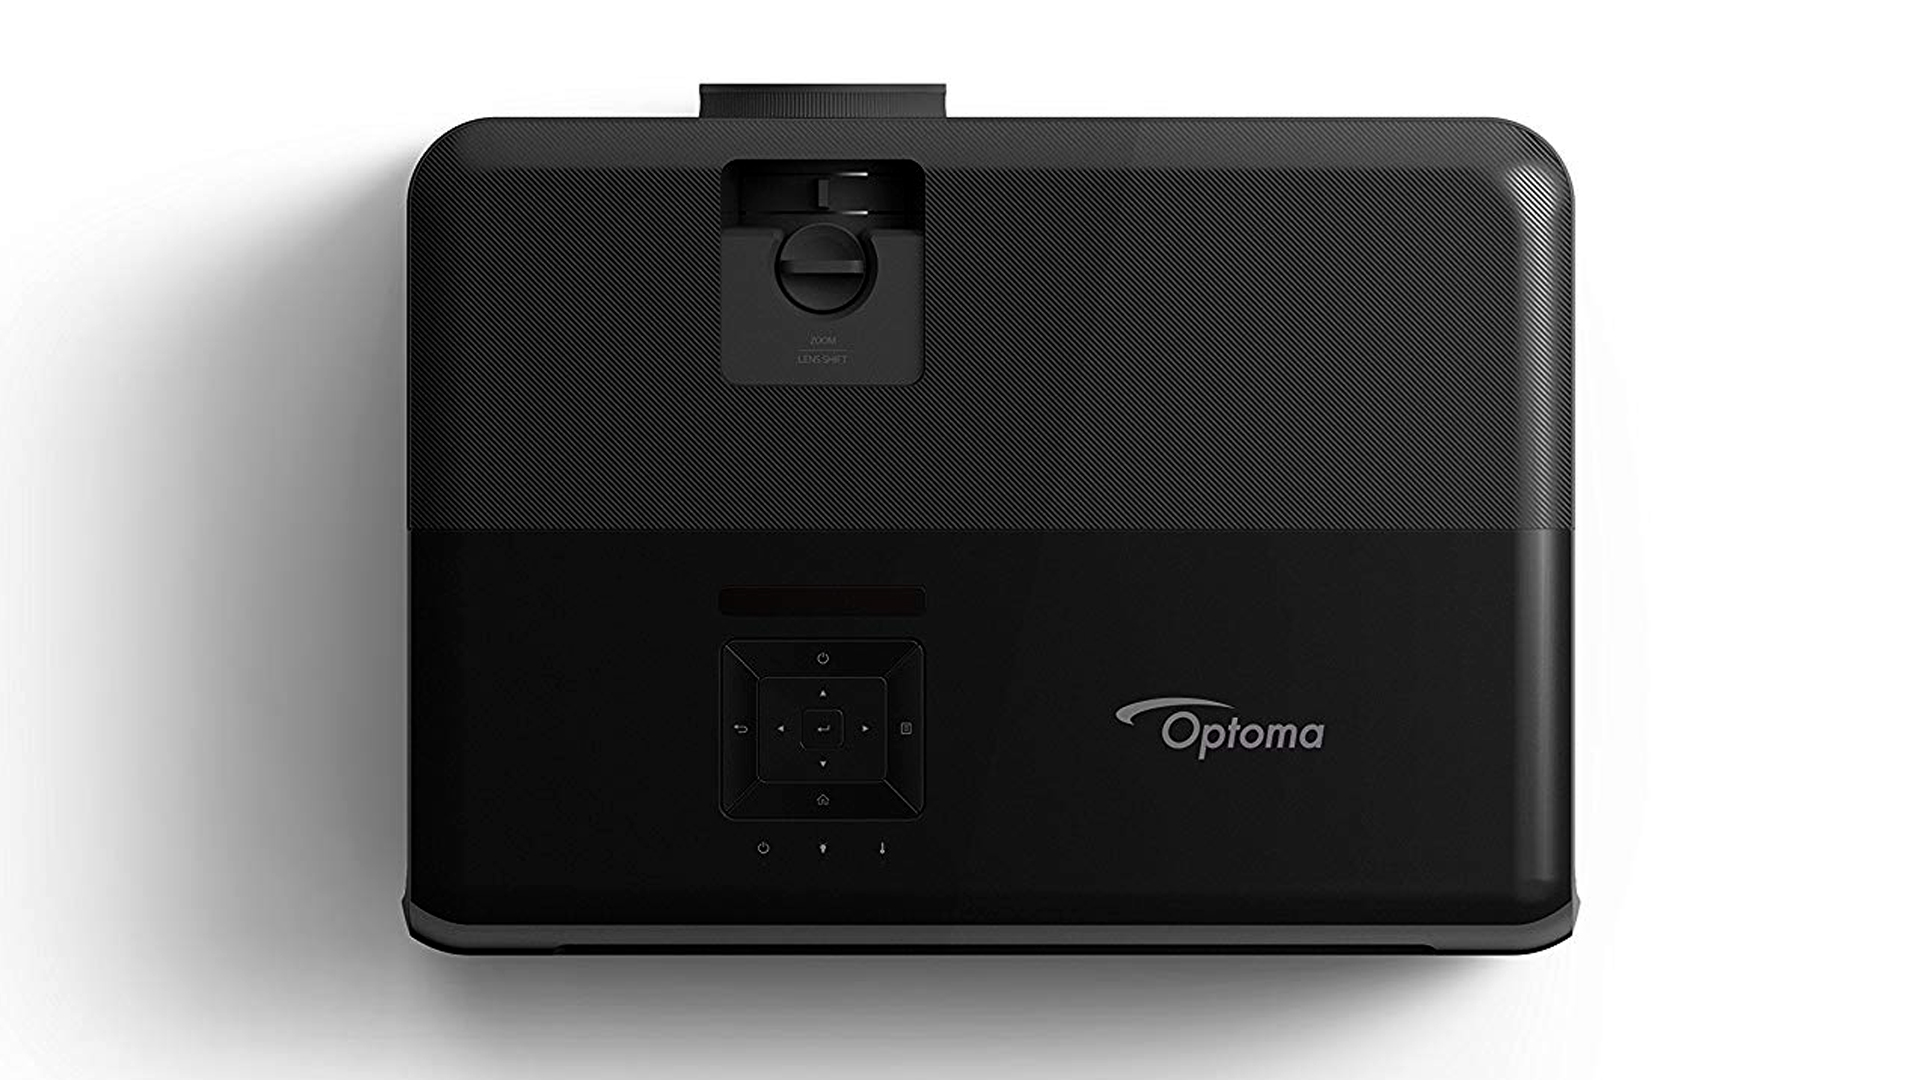 Optoma UHD51A 4K UHD Smart Home Theater Projector Audio/Video